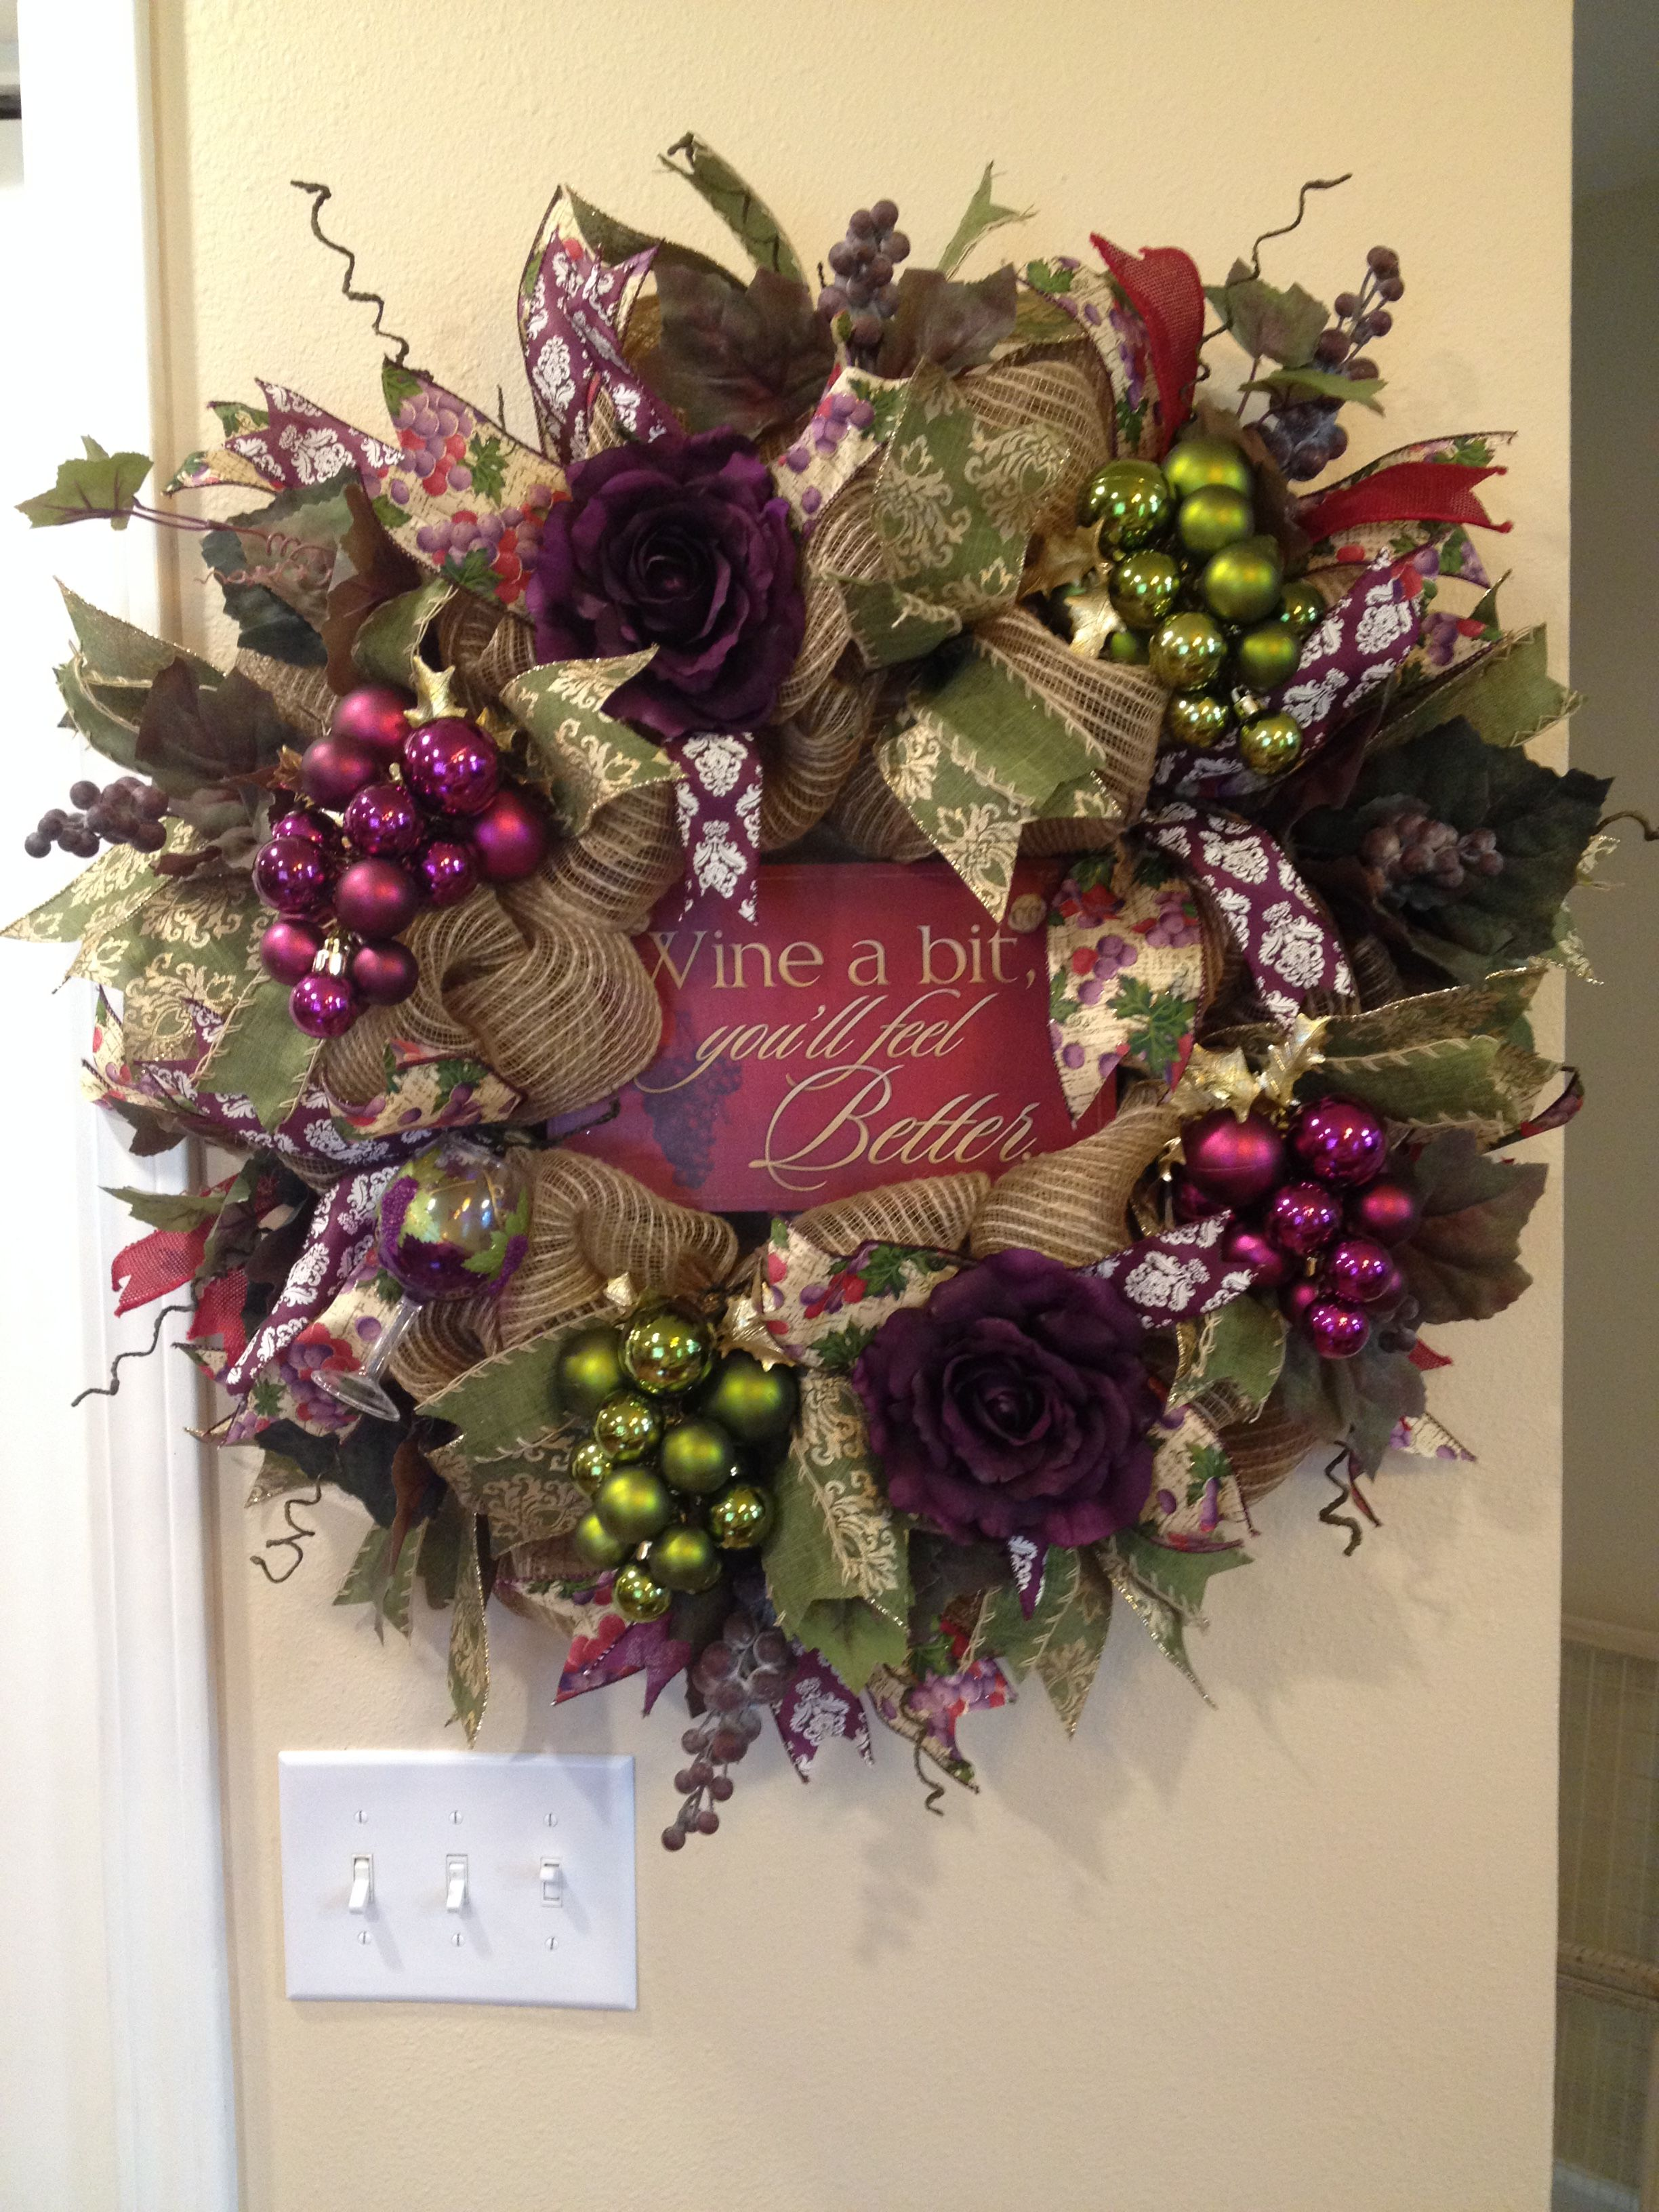 Pin by Andrea Bioletto on wine theme wreaths Pinterest